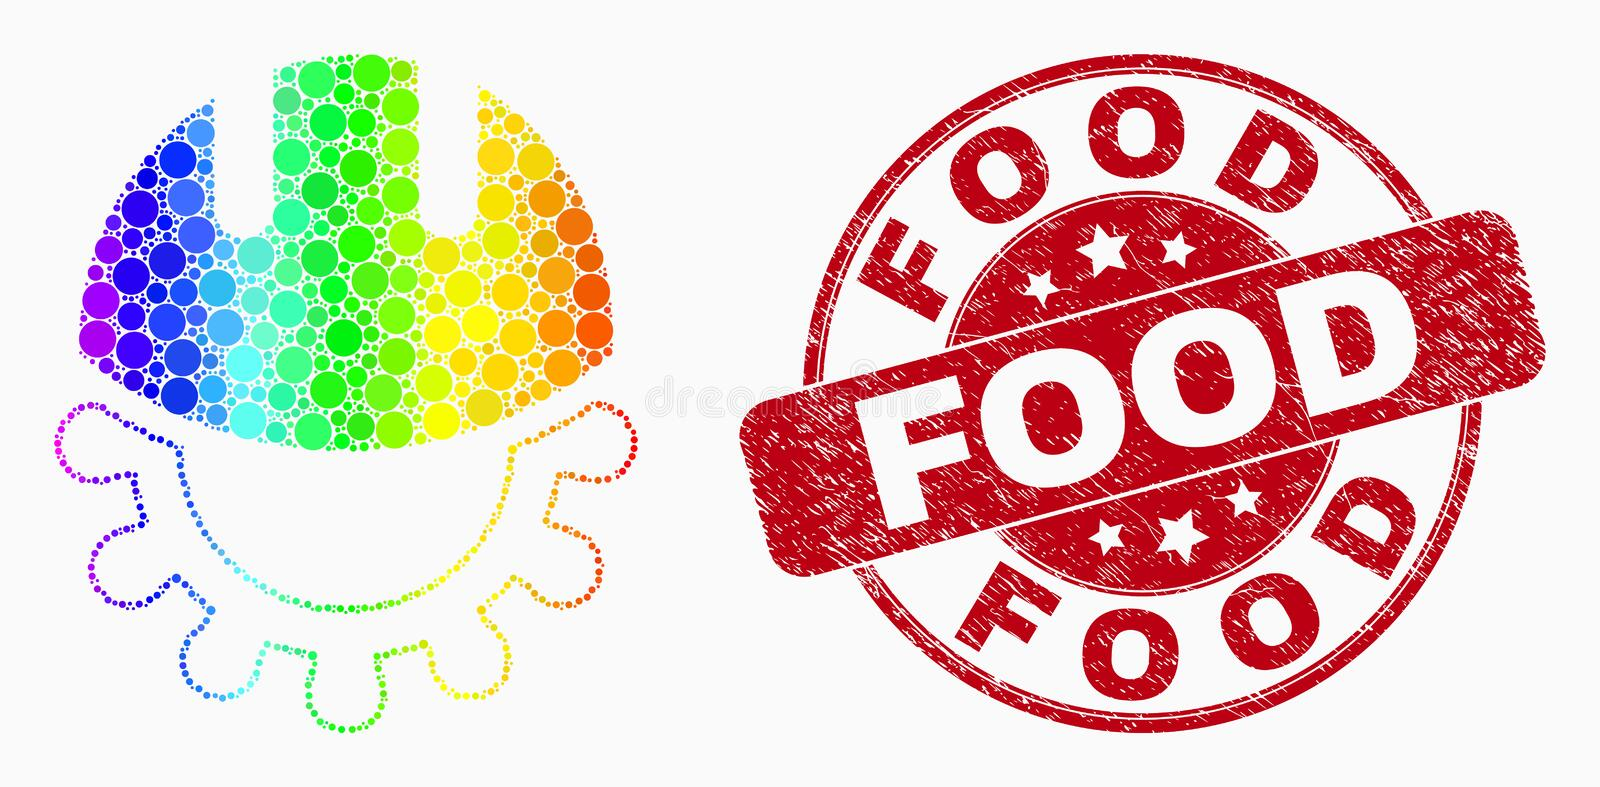 Vector Rainbow Colored Pixel Development Helmet Icon and Grunge Food Stamp Seal stock illustration